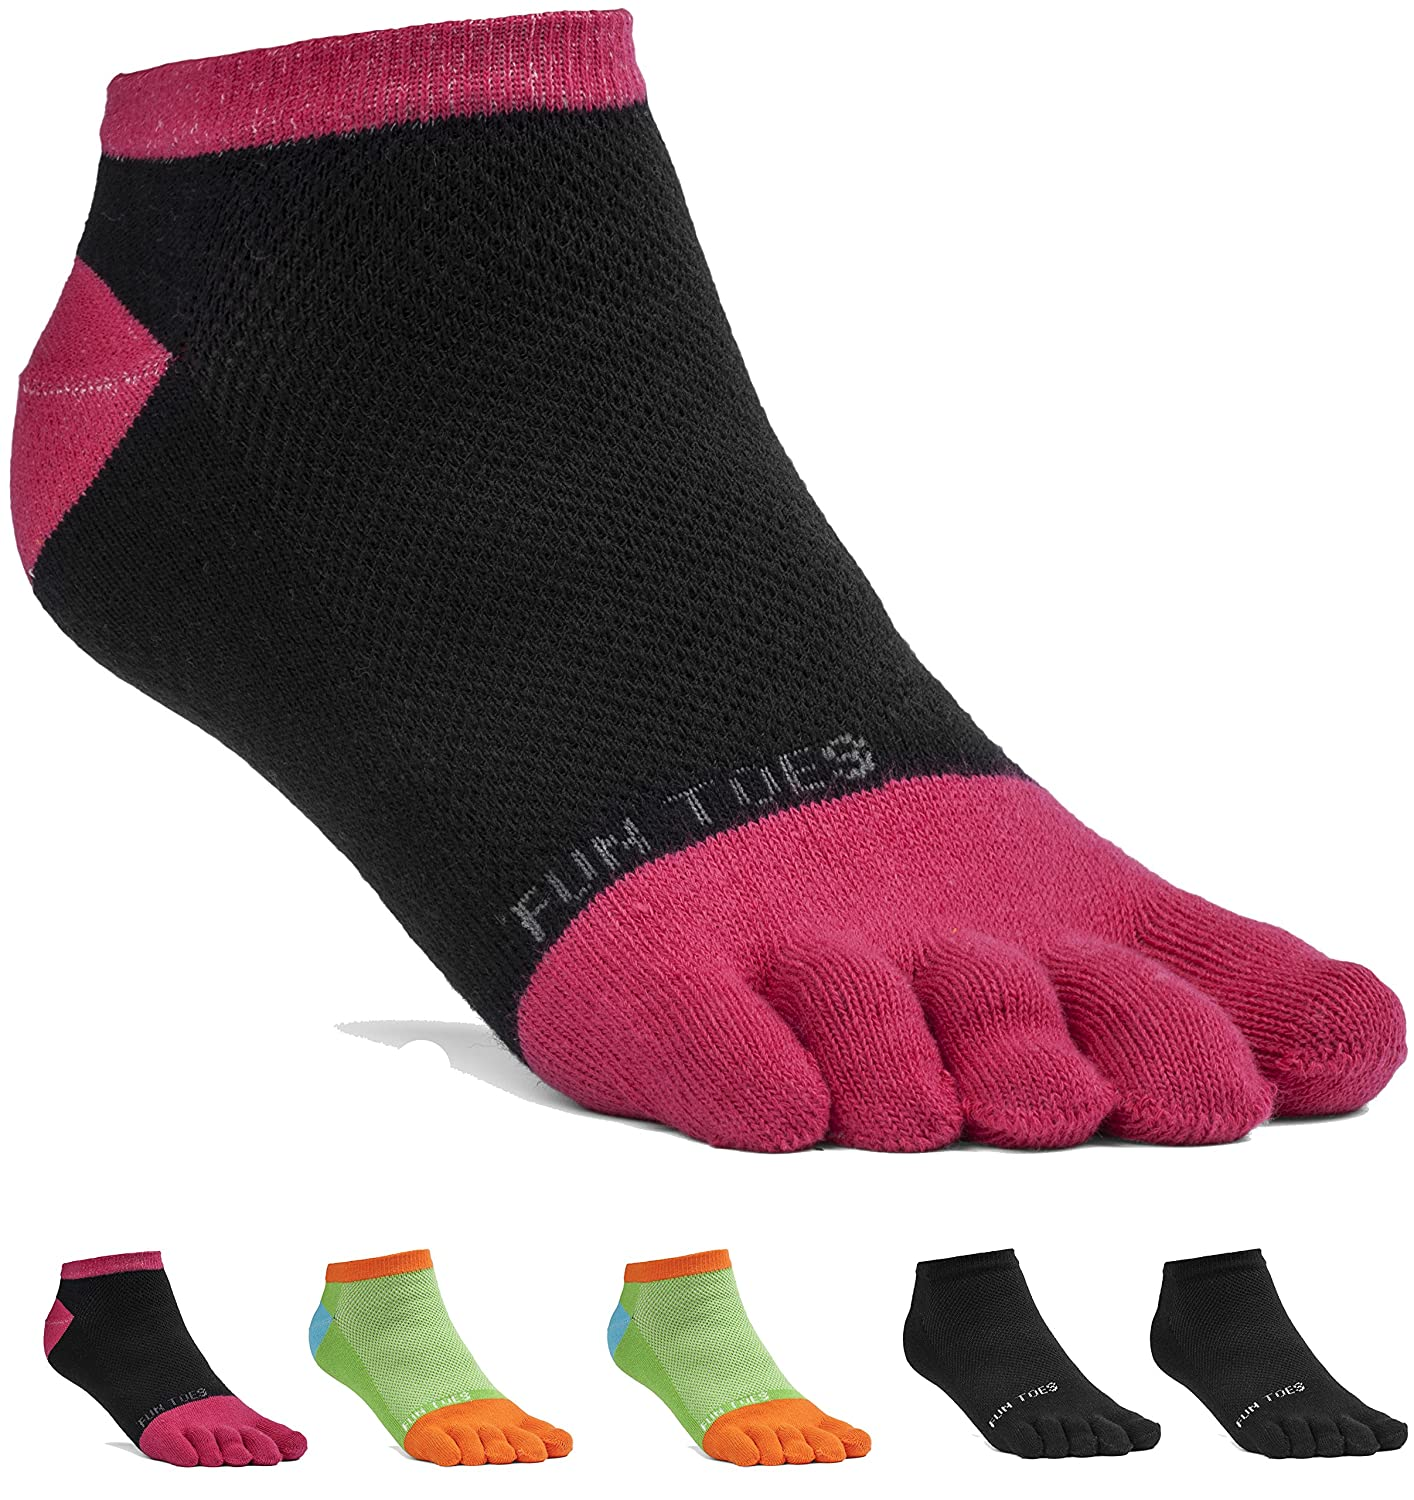 FUN TOES Womens Cotton Toe Socks-Breathable-6 PAIRS Pack-Size 9-11-Lightweight